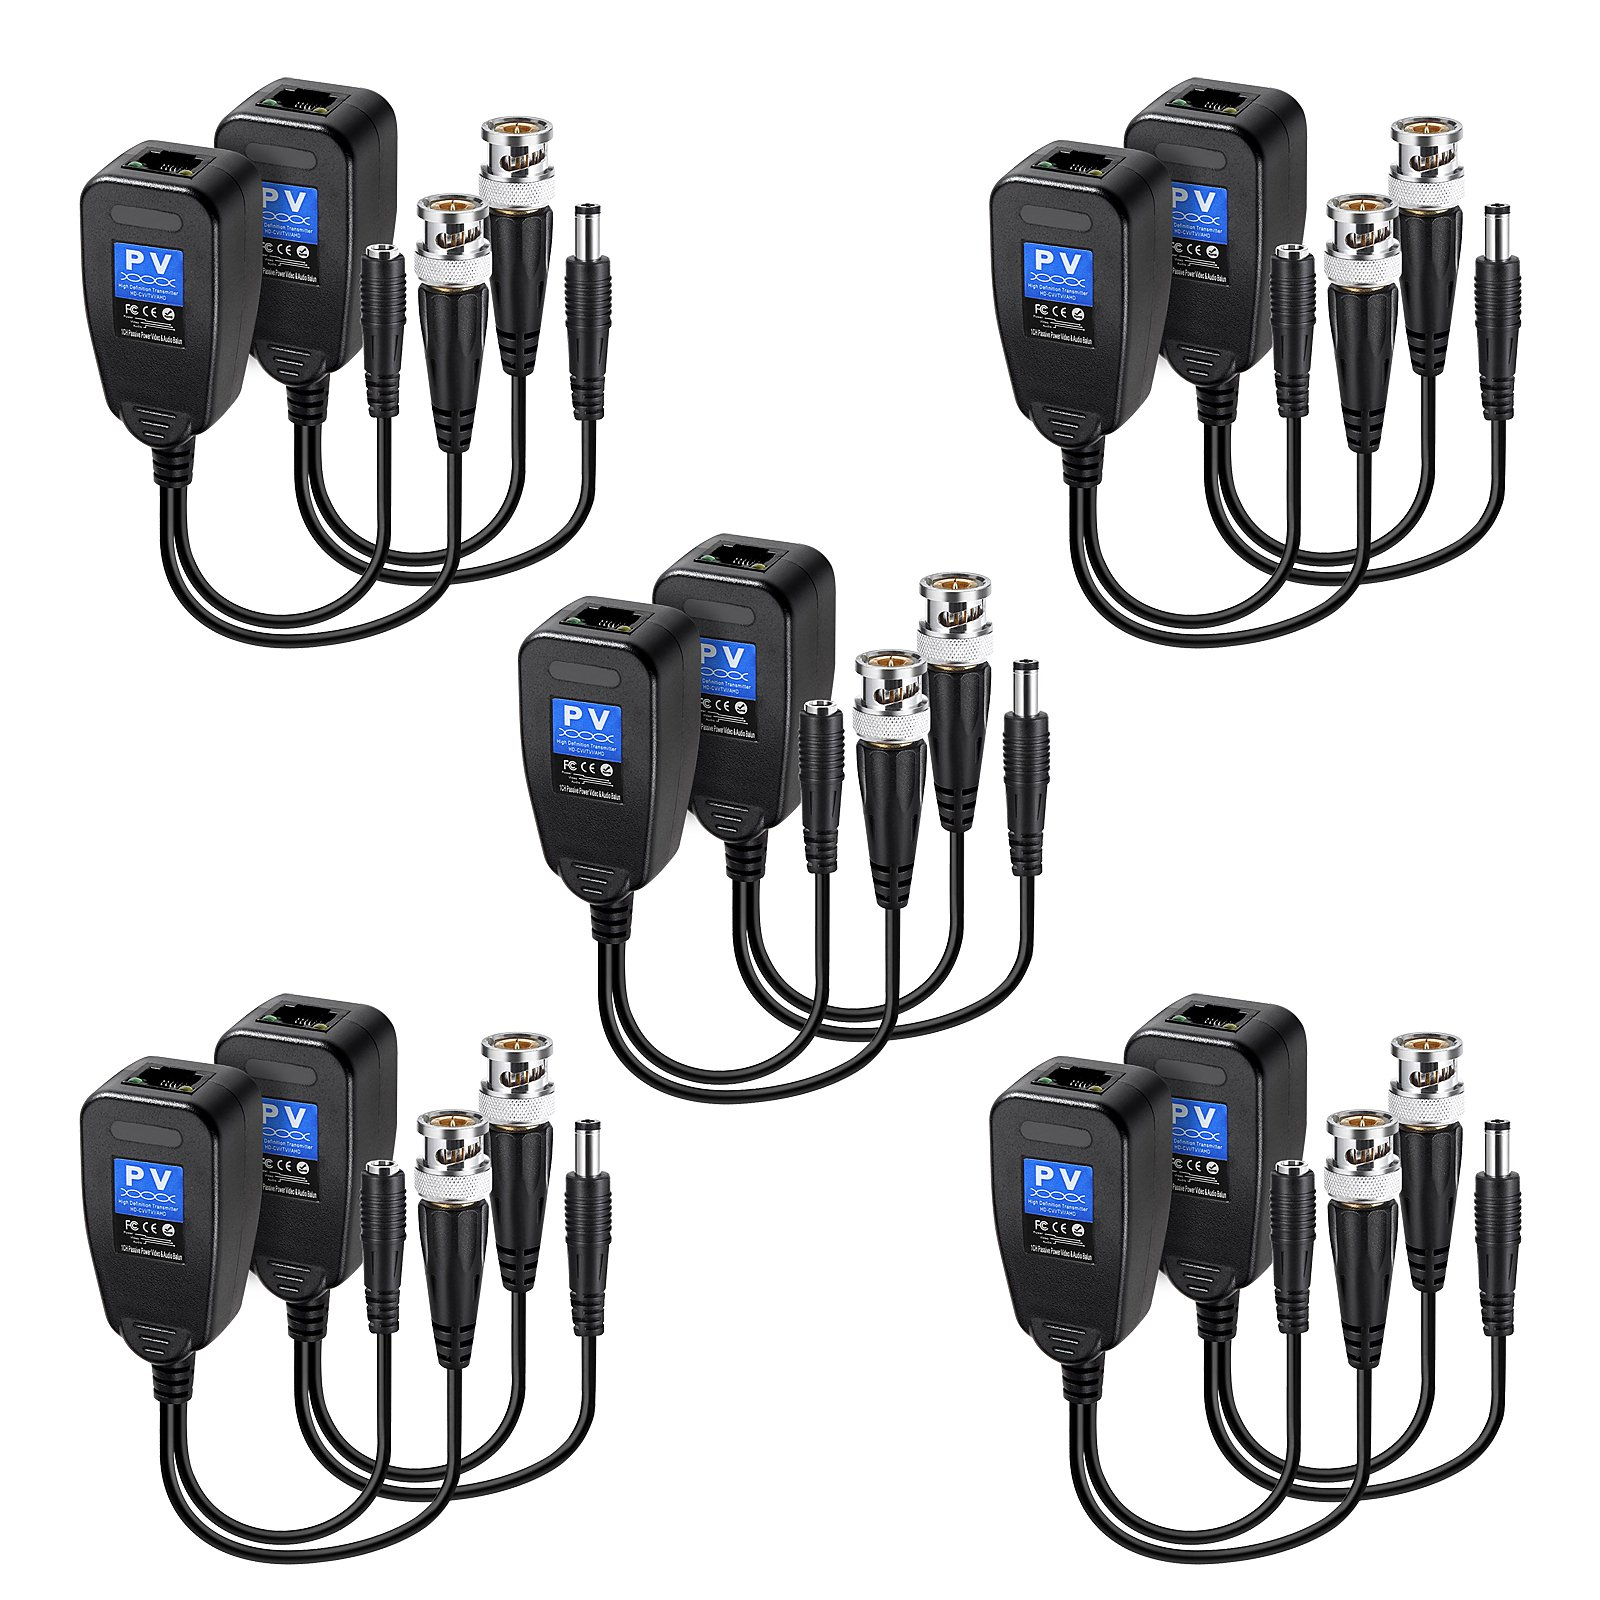 Passive Video Balun RJ45 Transceiver Transmitter HD-CVI/TVI/AHD/CVBS with DC Built-in Transient Suppression Protection for 720P/960P/1080P/2MP CCTV Security DVR Surveillance Camera System 5 Pairs by eoere